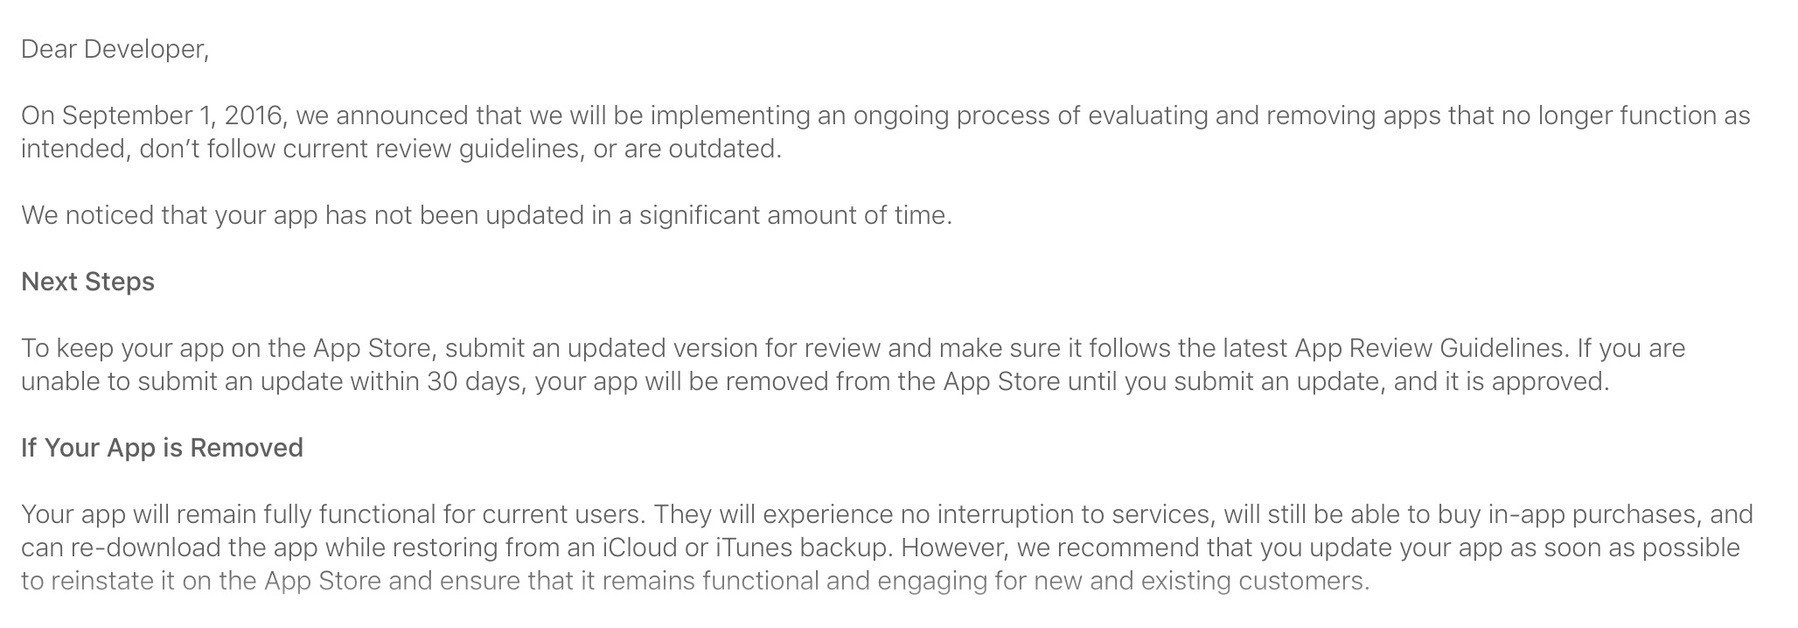 Screenshot of notice from Apple that an iOS app must be updated within 30 days or face removal.